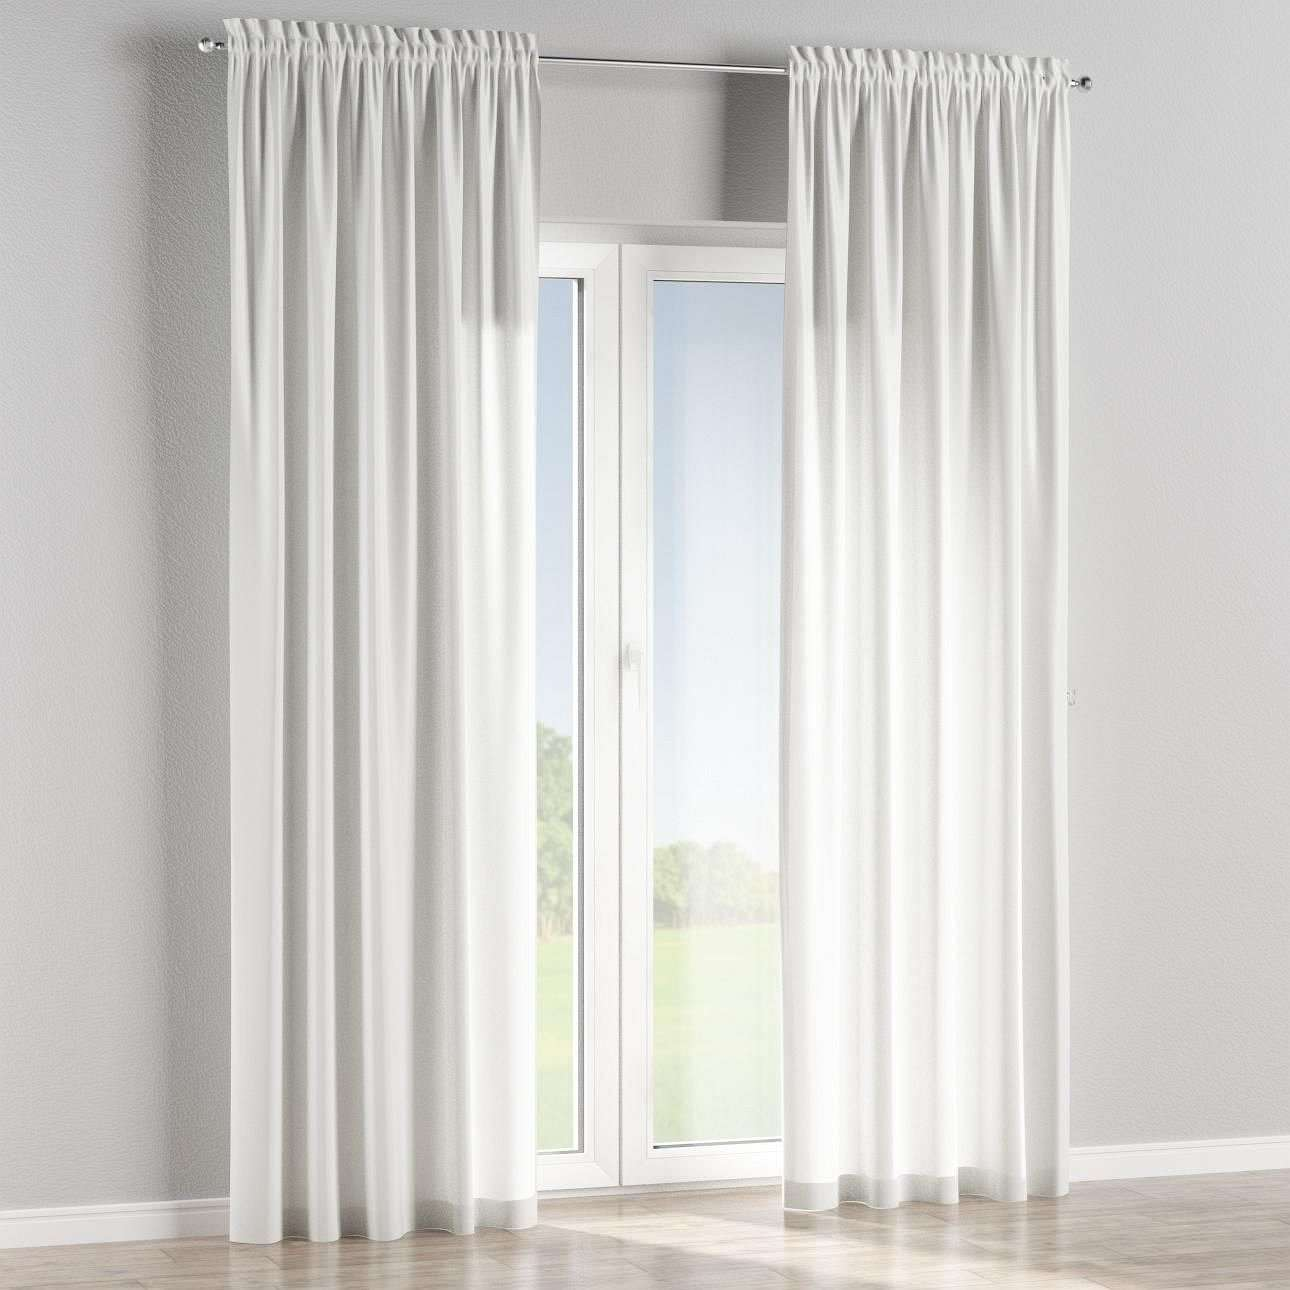 Slot and frill lined curtains in collection Freestyle, fabric: 150-20